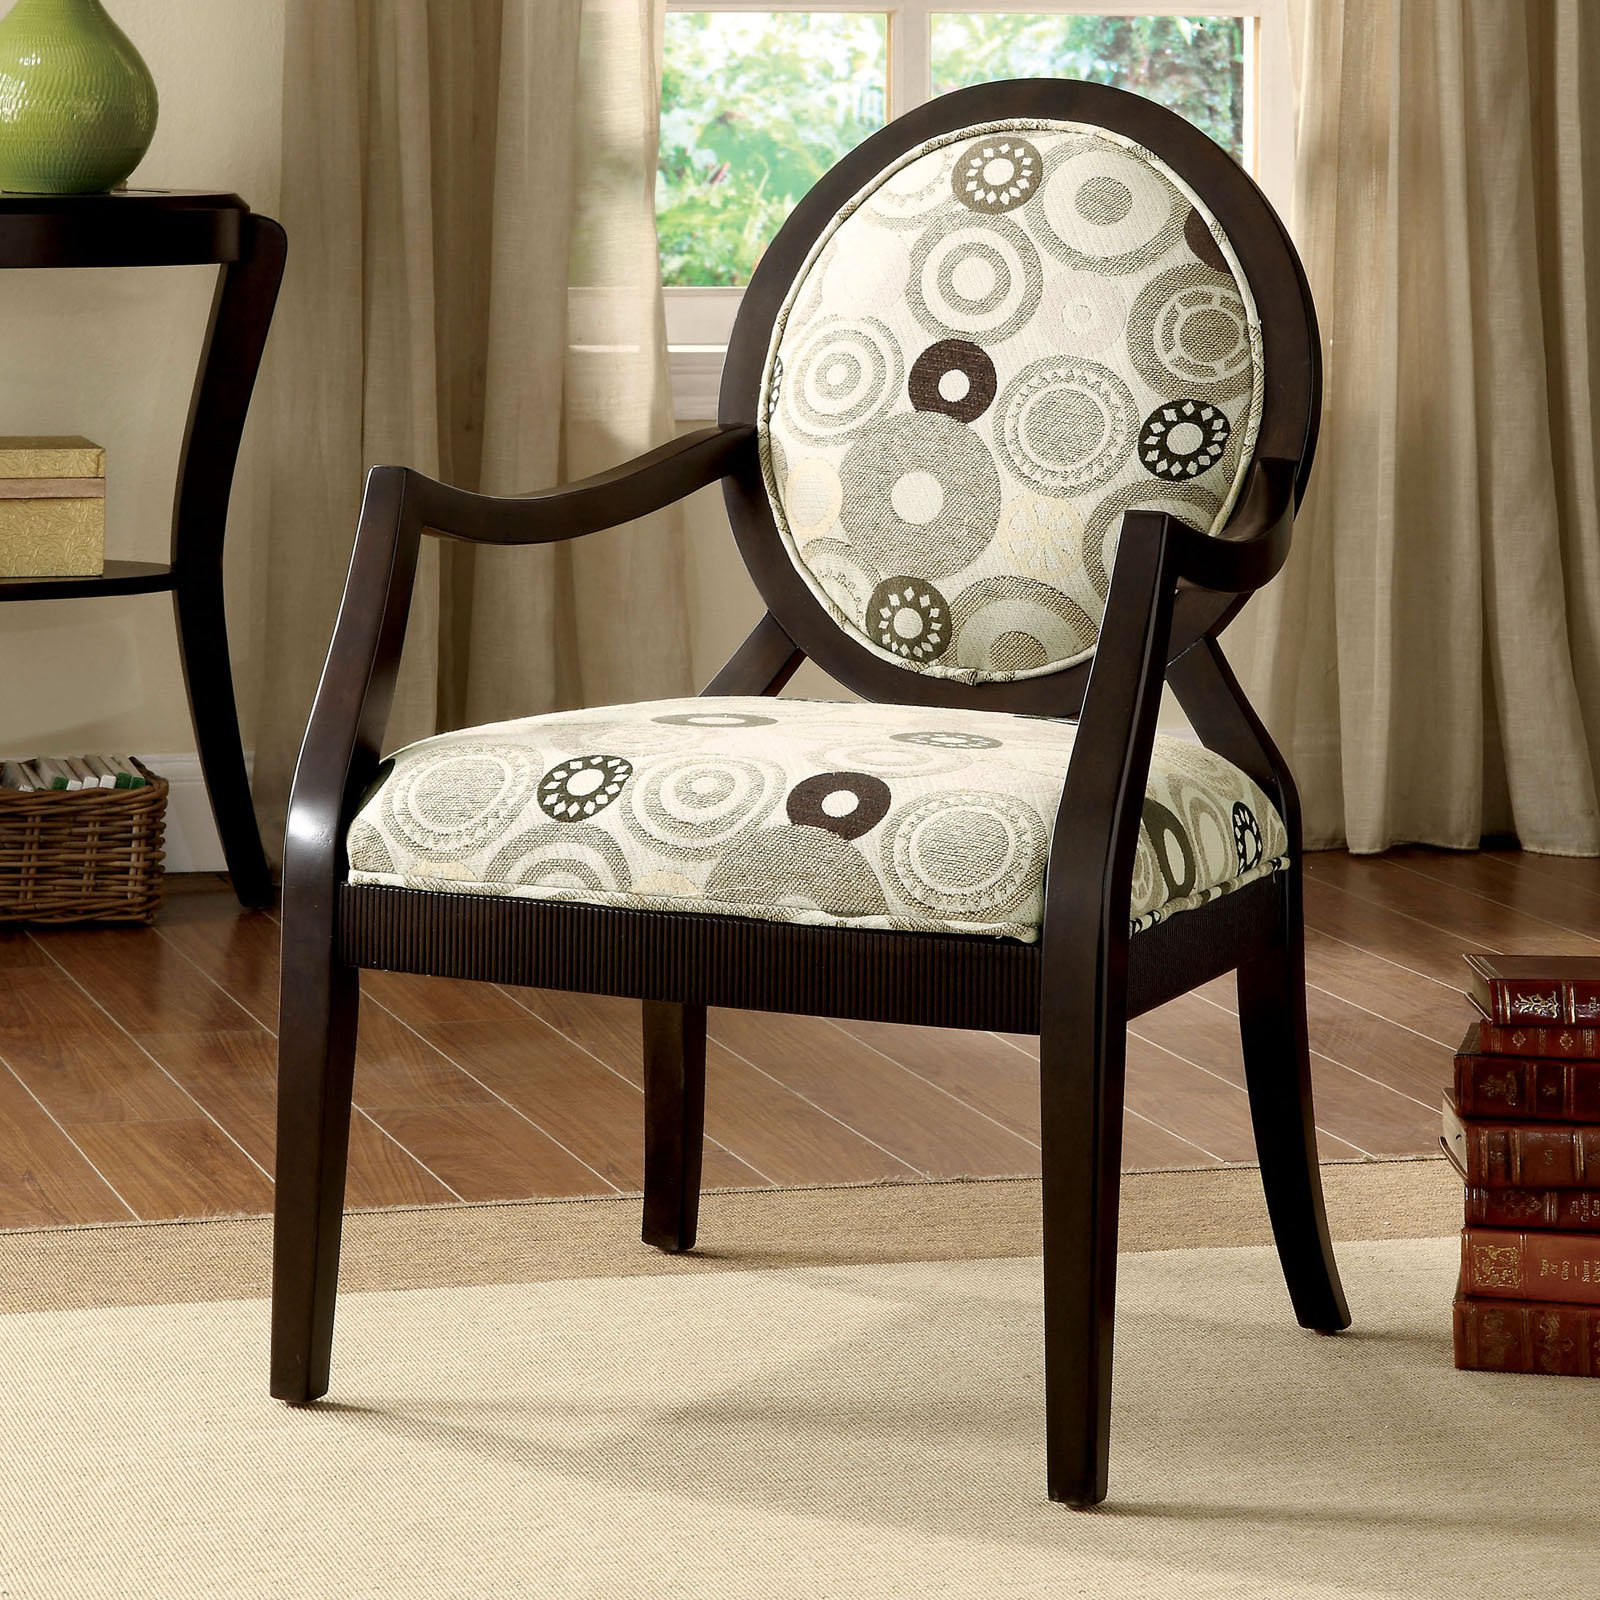 Ordinaire Furniture Of America Carla Oval Upholstered Arm Chair